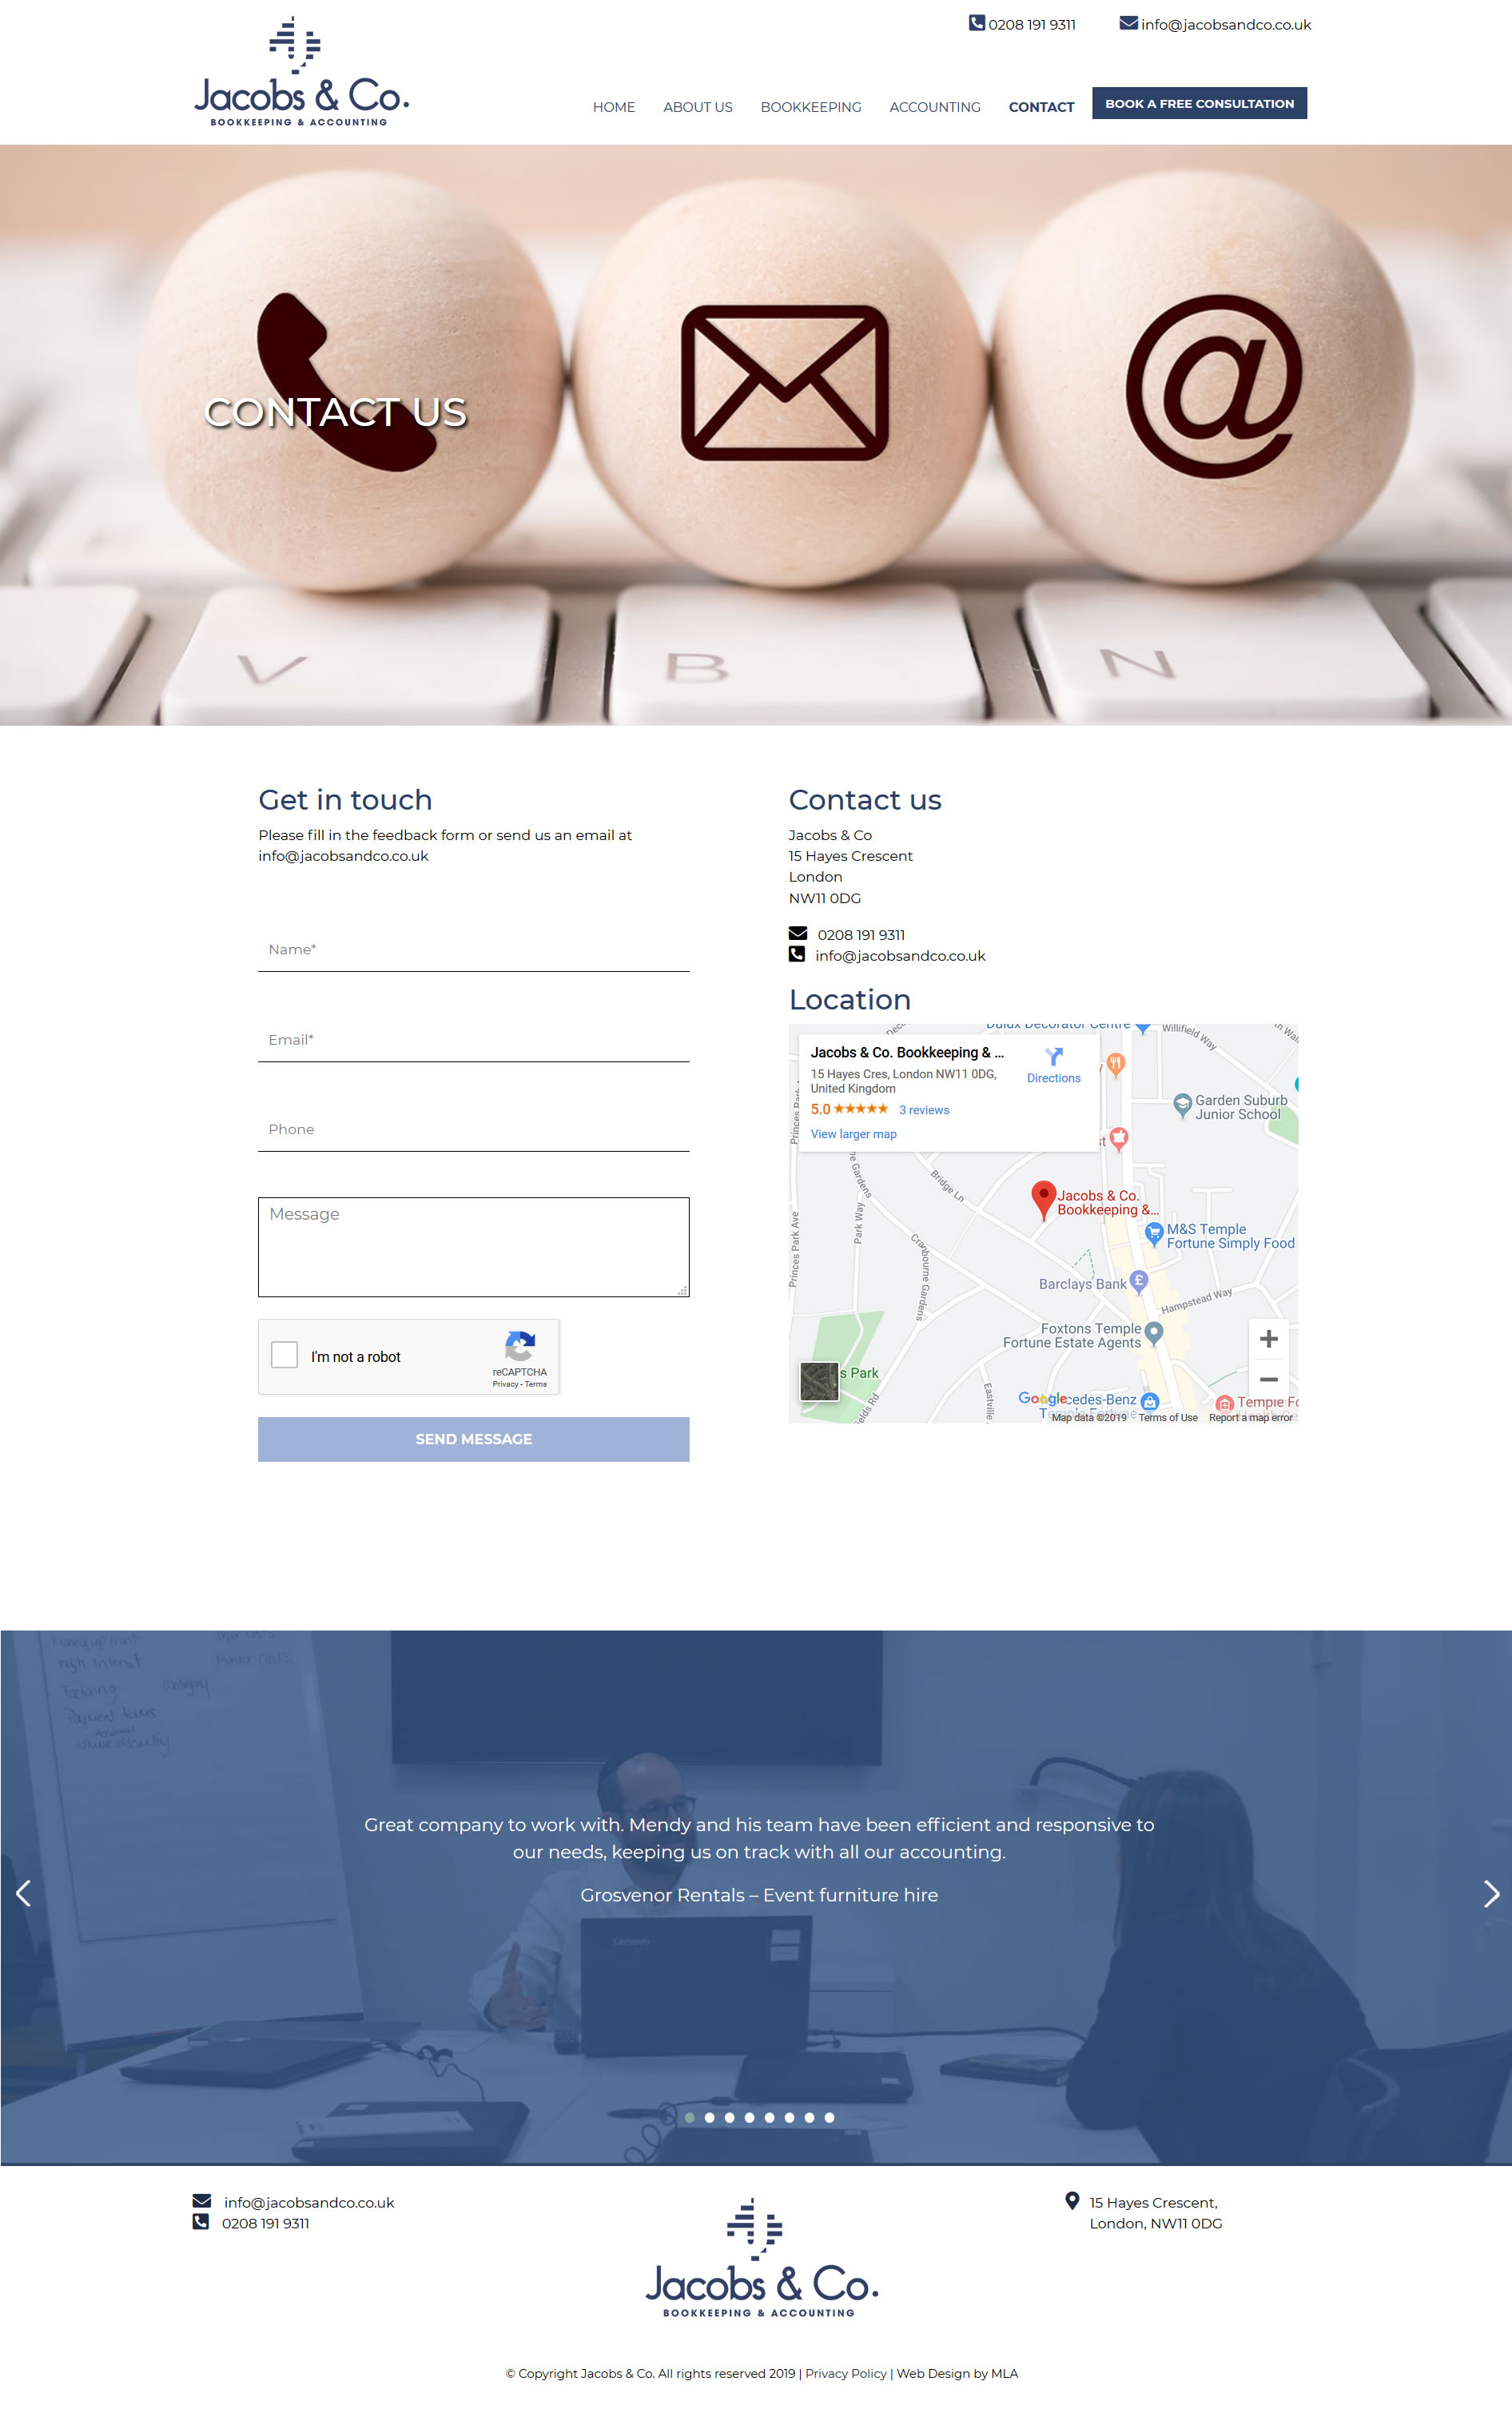 Jacobs and co website contact page design - Website design London